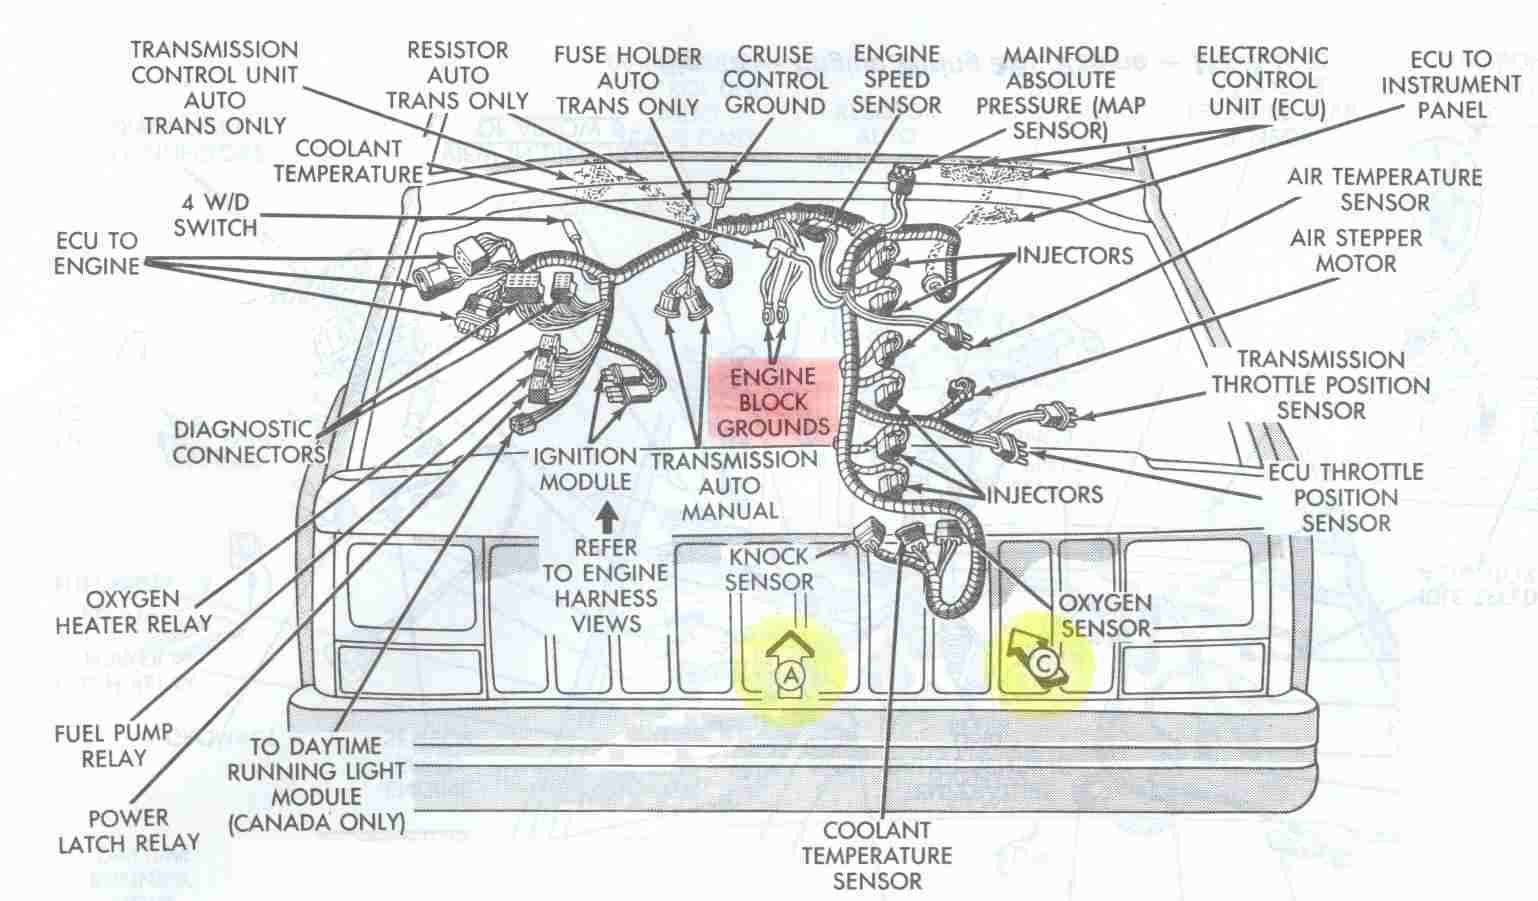 ab0134a7d9e021431187af597eb4aeca engine bay schematic showing major electrical ground points for 1989 jeep cherokee fuse box diagram at crackthecode.co